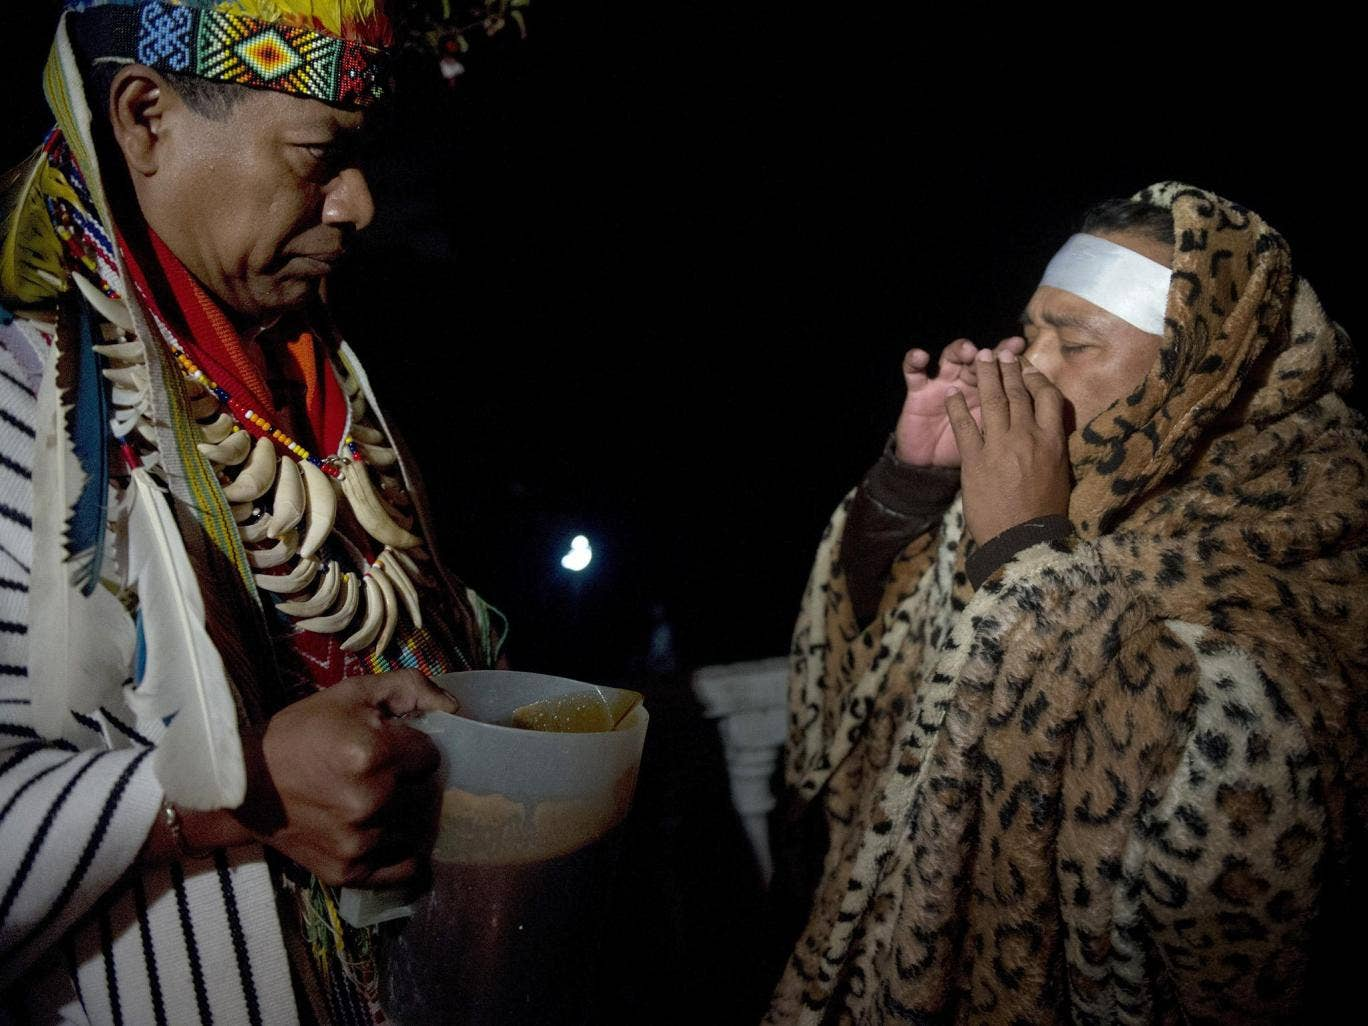 Ayahuasca being used during a ceremony in Columbia